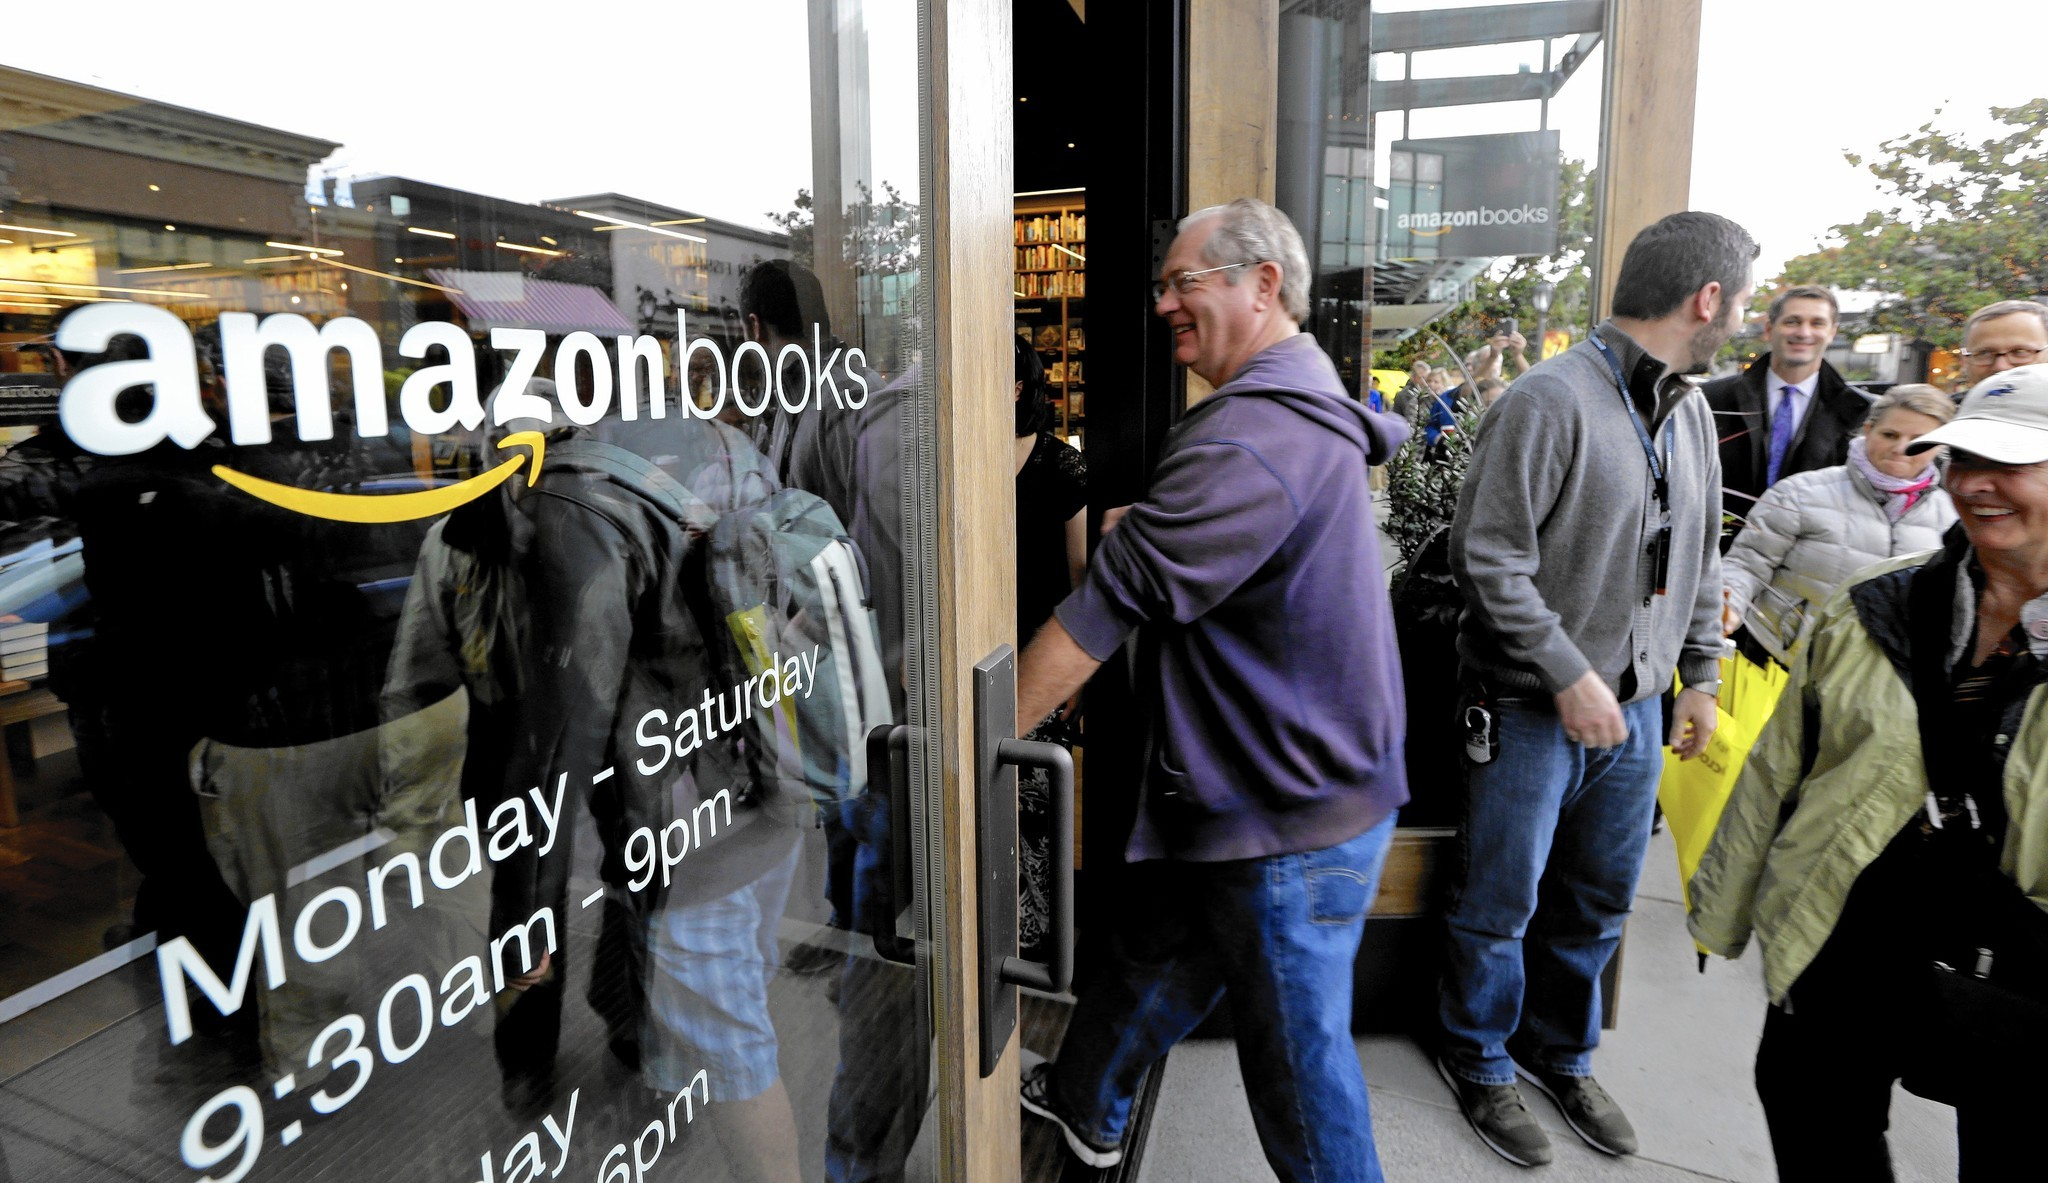 http://www.latimes.com/business/la-fi-amazon-bookstore-20160212-story.html